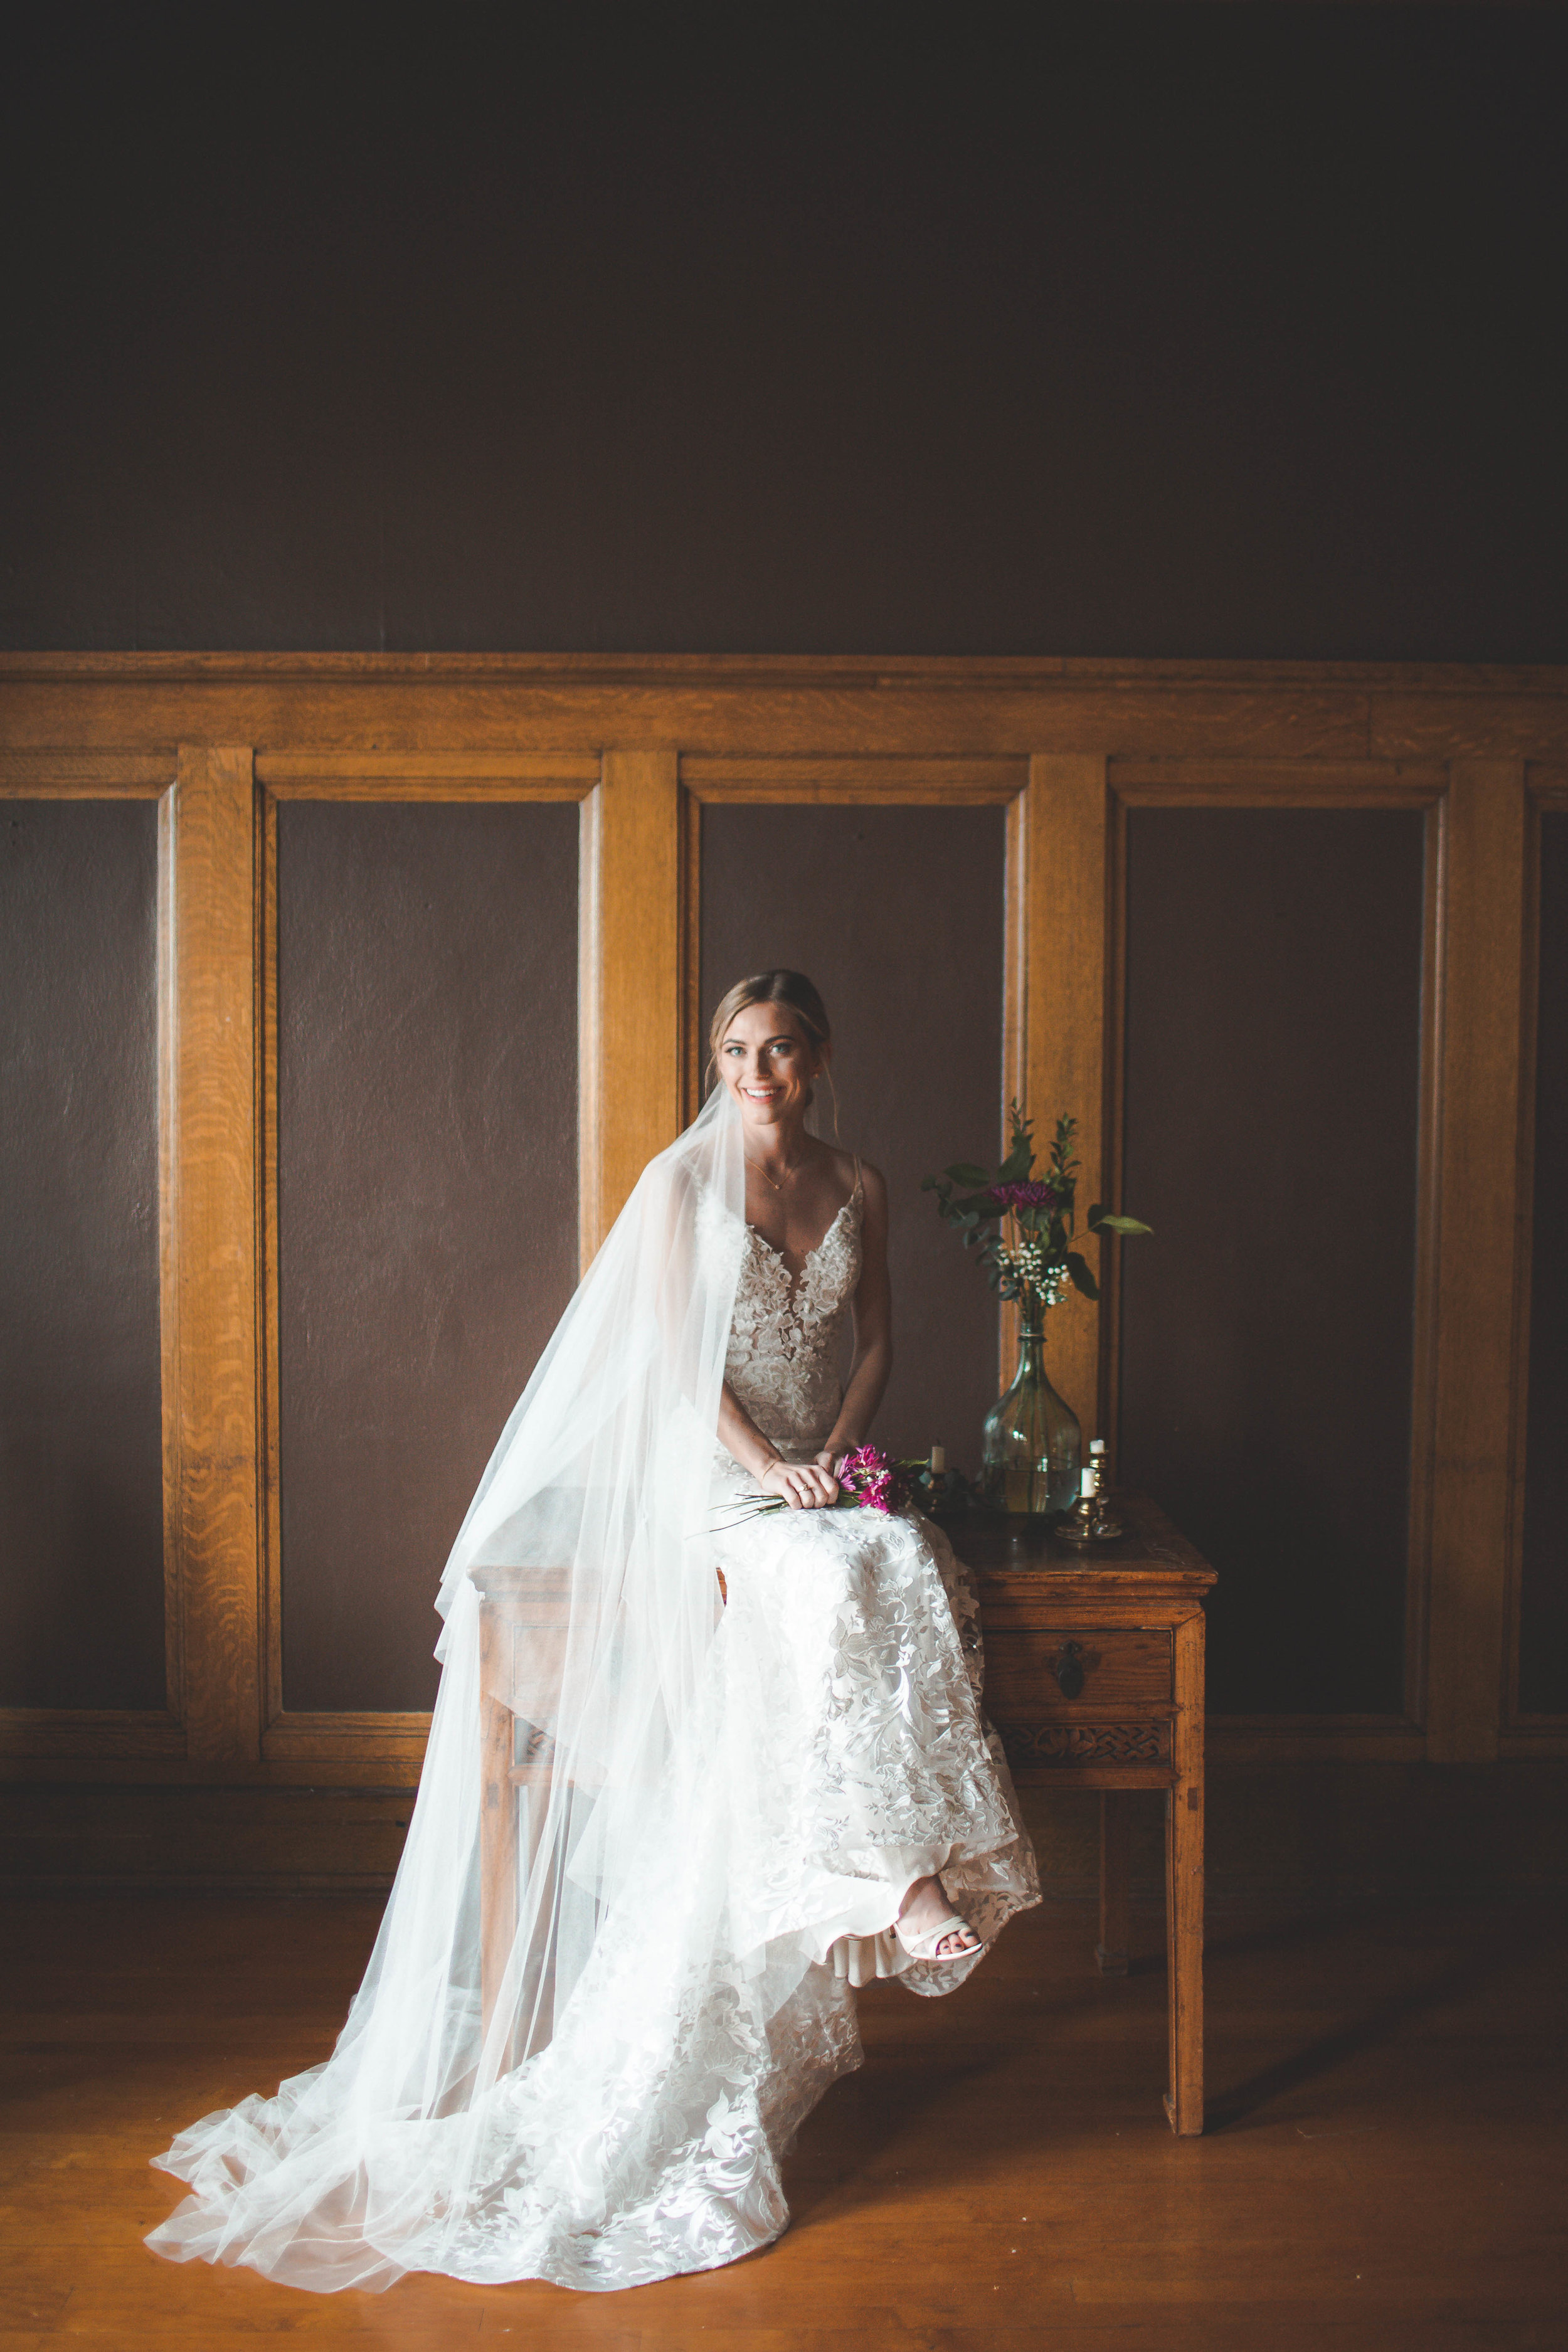 spokane bride wedding dress veil